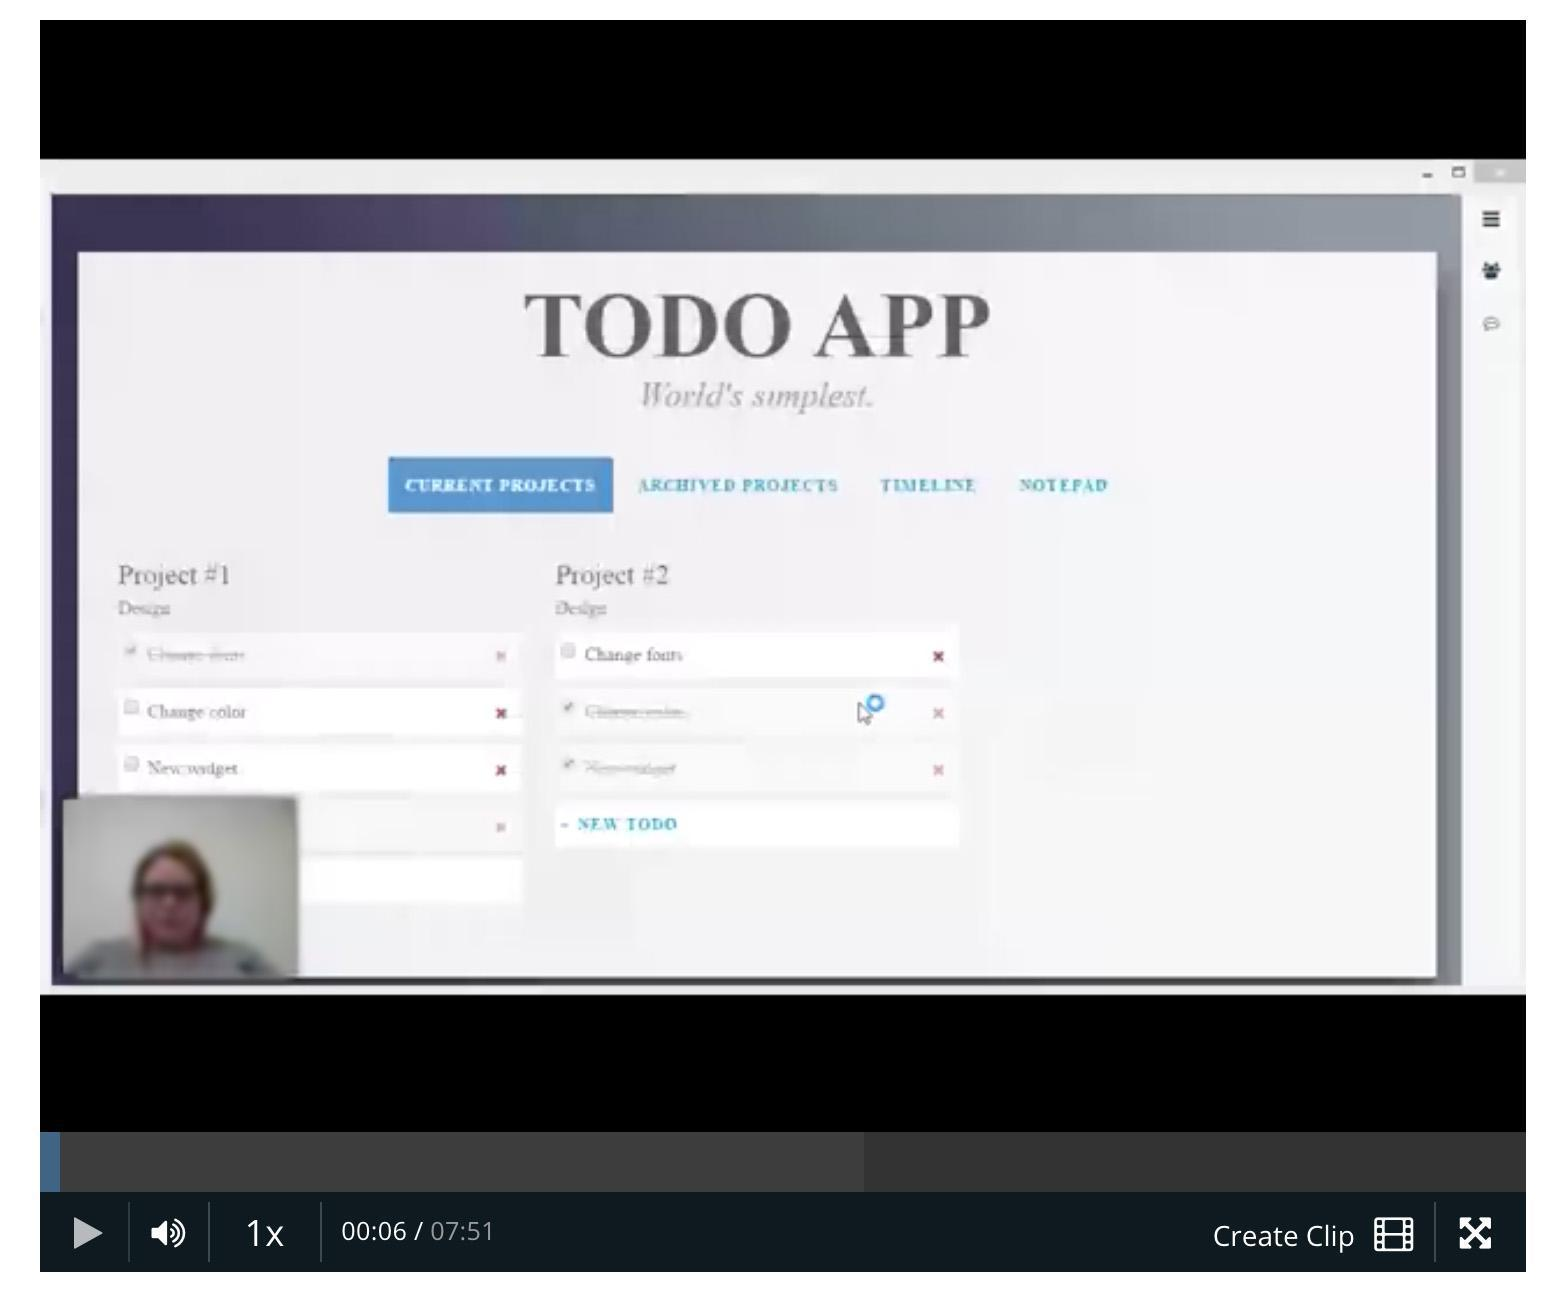 A usability test for a to-do app.